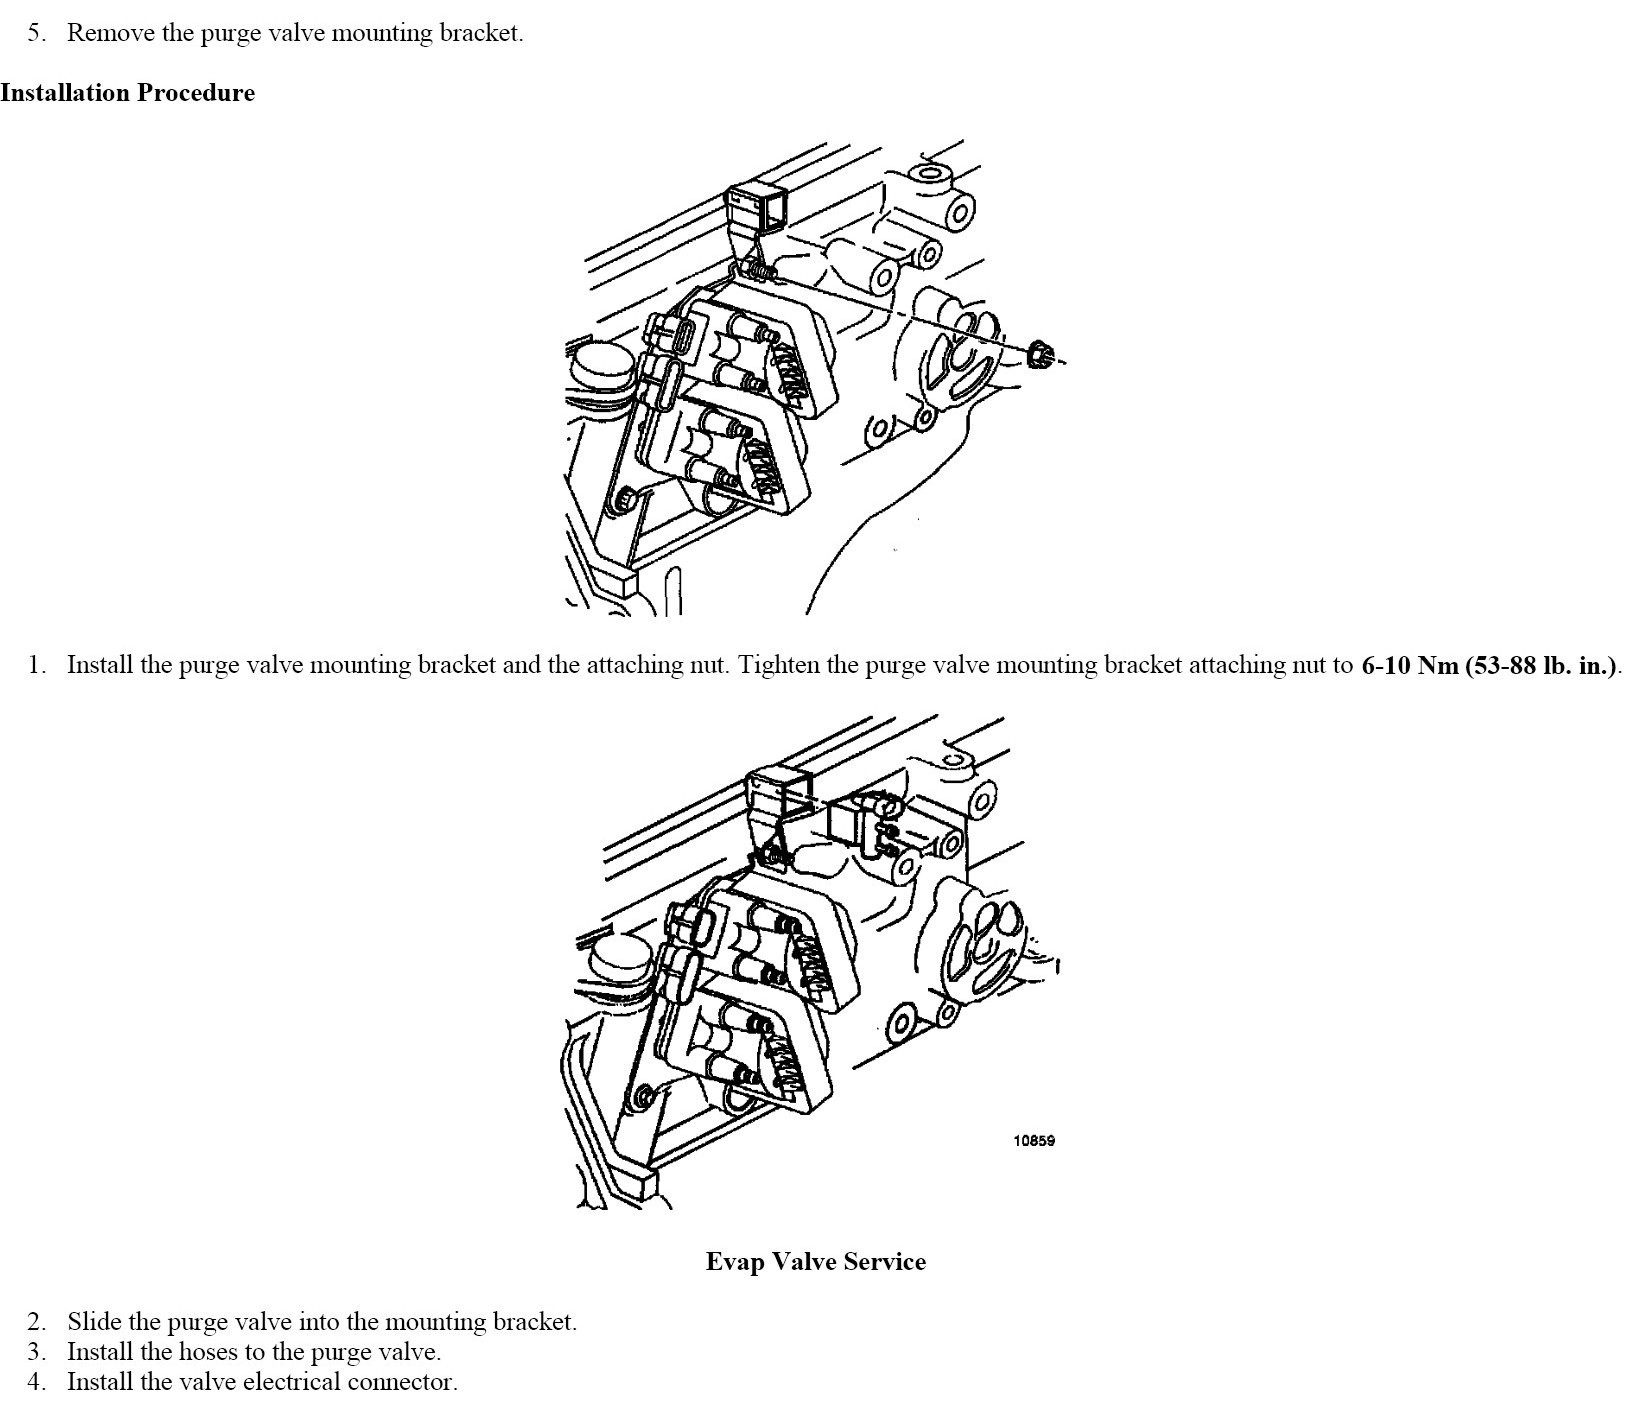 Pontiac 2 2l Engine furthermore 2001 Hyundai Elantra Engine Diagram Thermostat moreover Discussion C22975 ds539951 besides 2006 Chevy Impala Blend Door Actuator Location moreover 2004 Chevy Cavalier Wiring Diagram. on 2003 chevy cavalier oil filter location